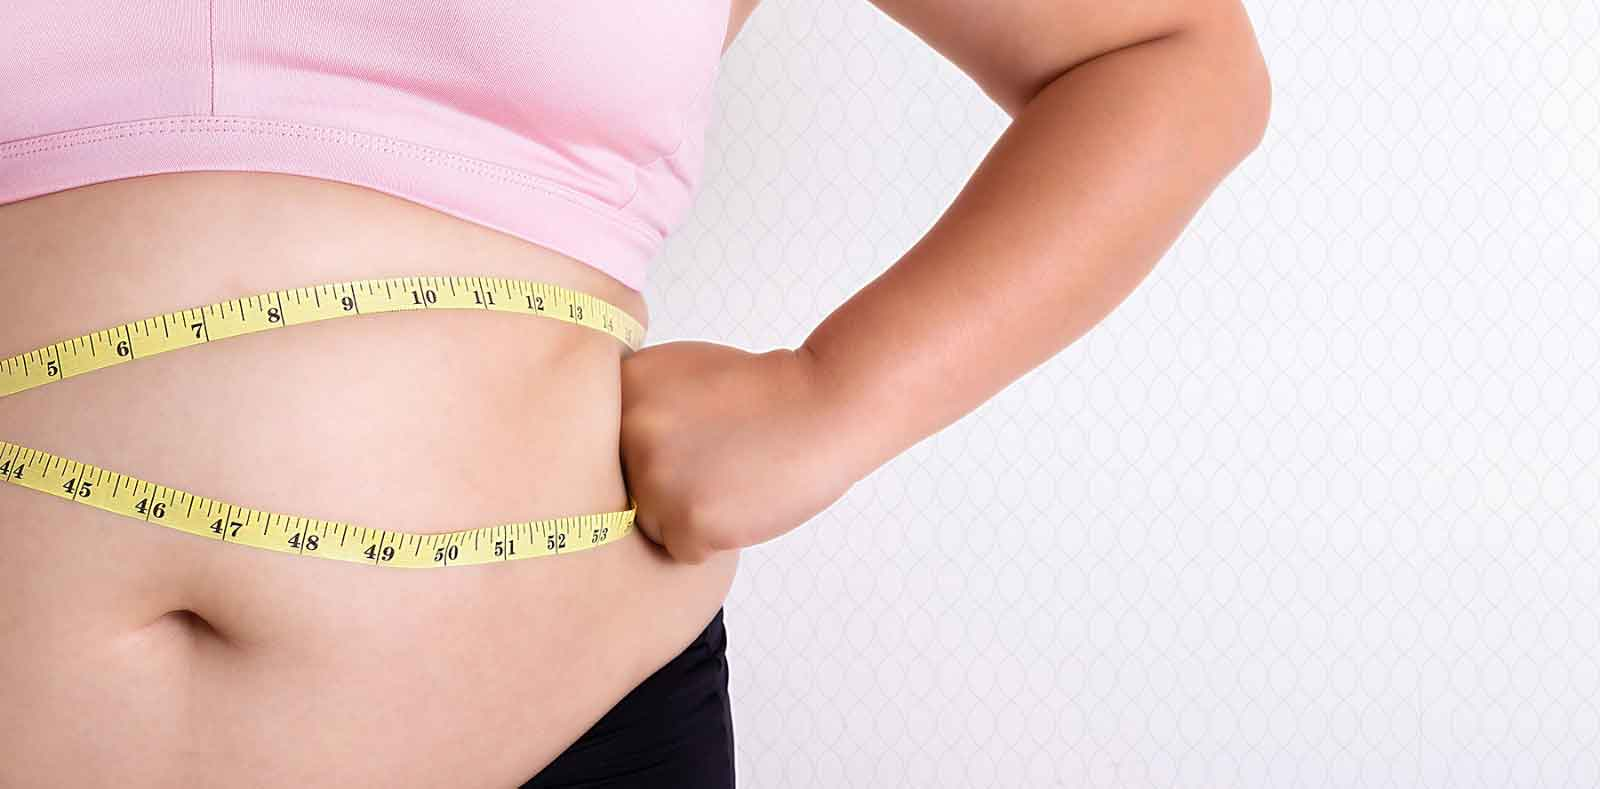 How much does it cost for liposuction 4